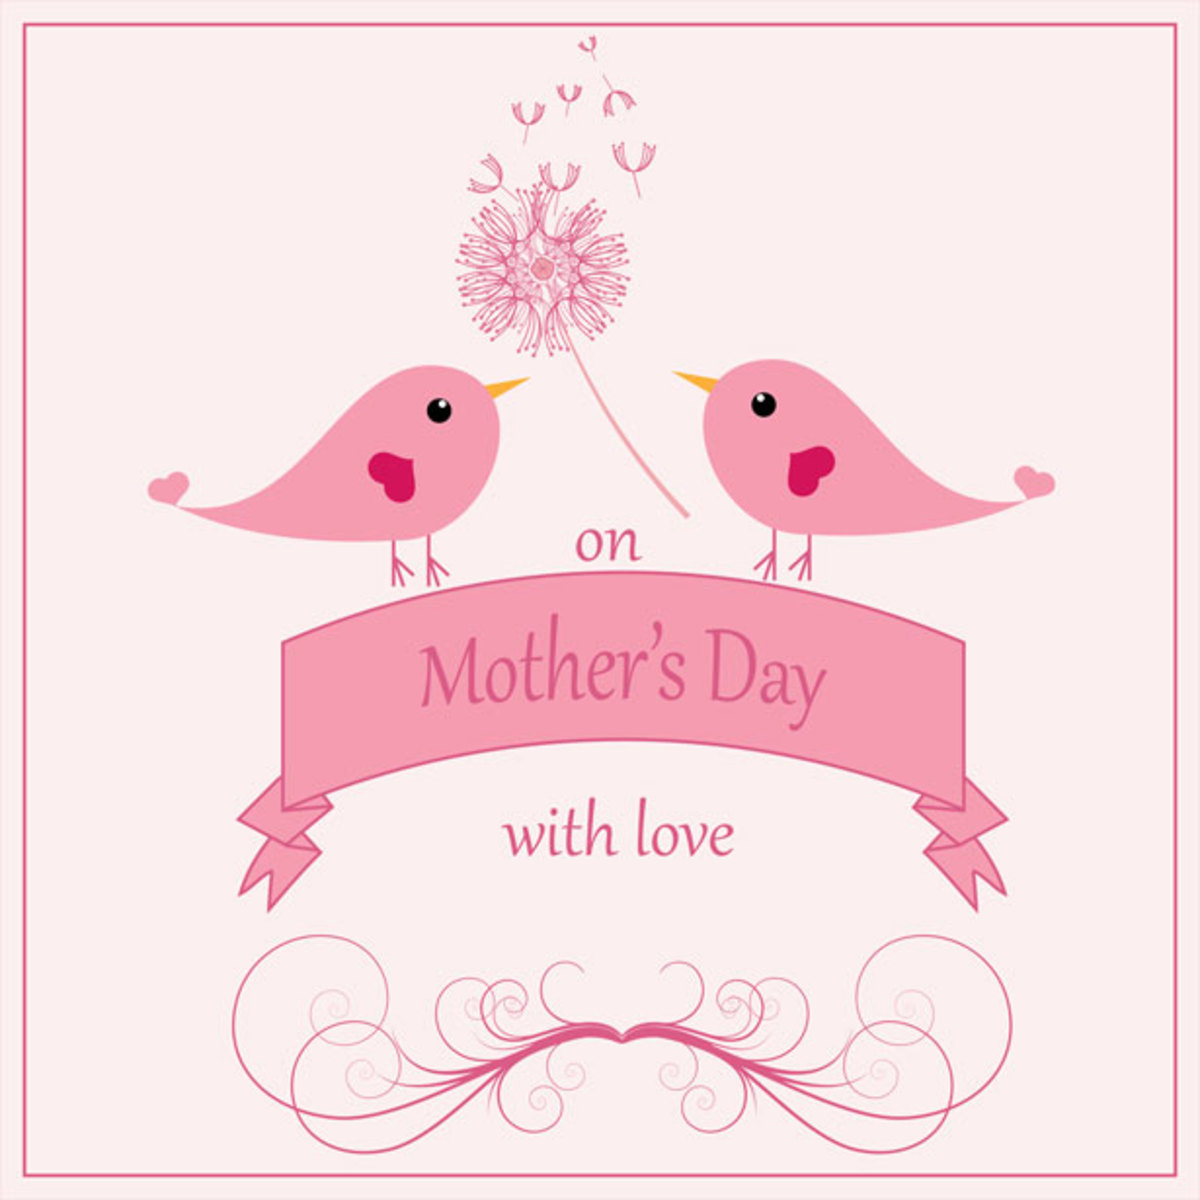 Mother's Day Picture with Pink Love Birds